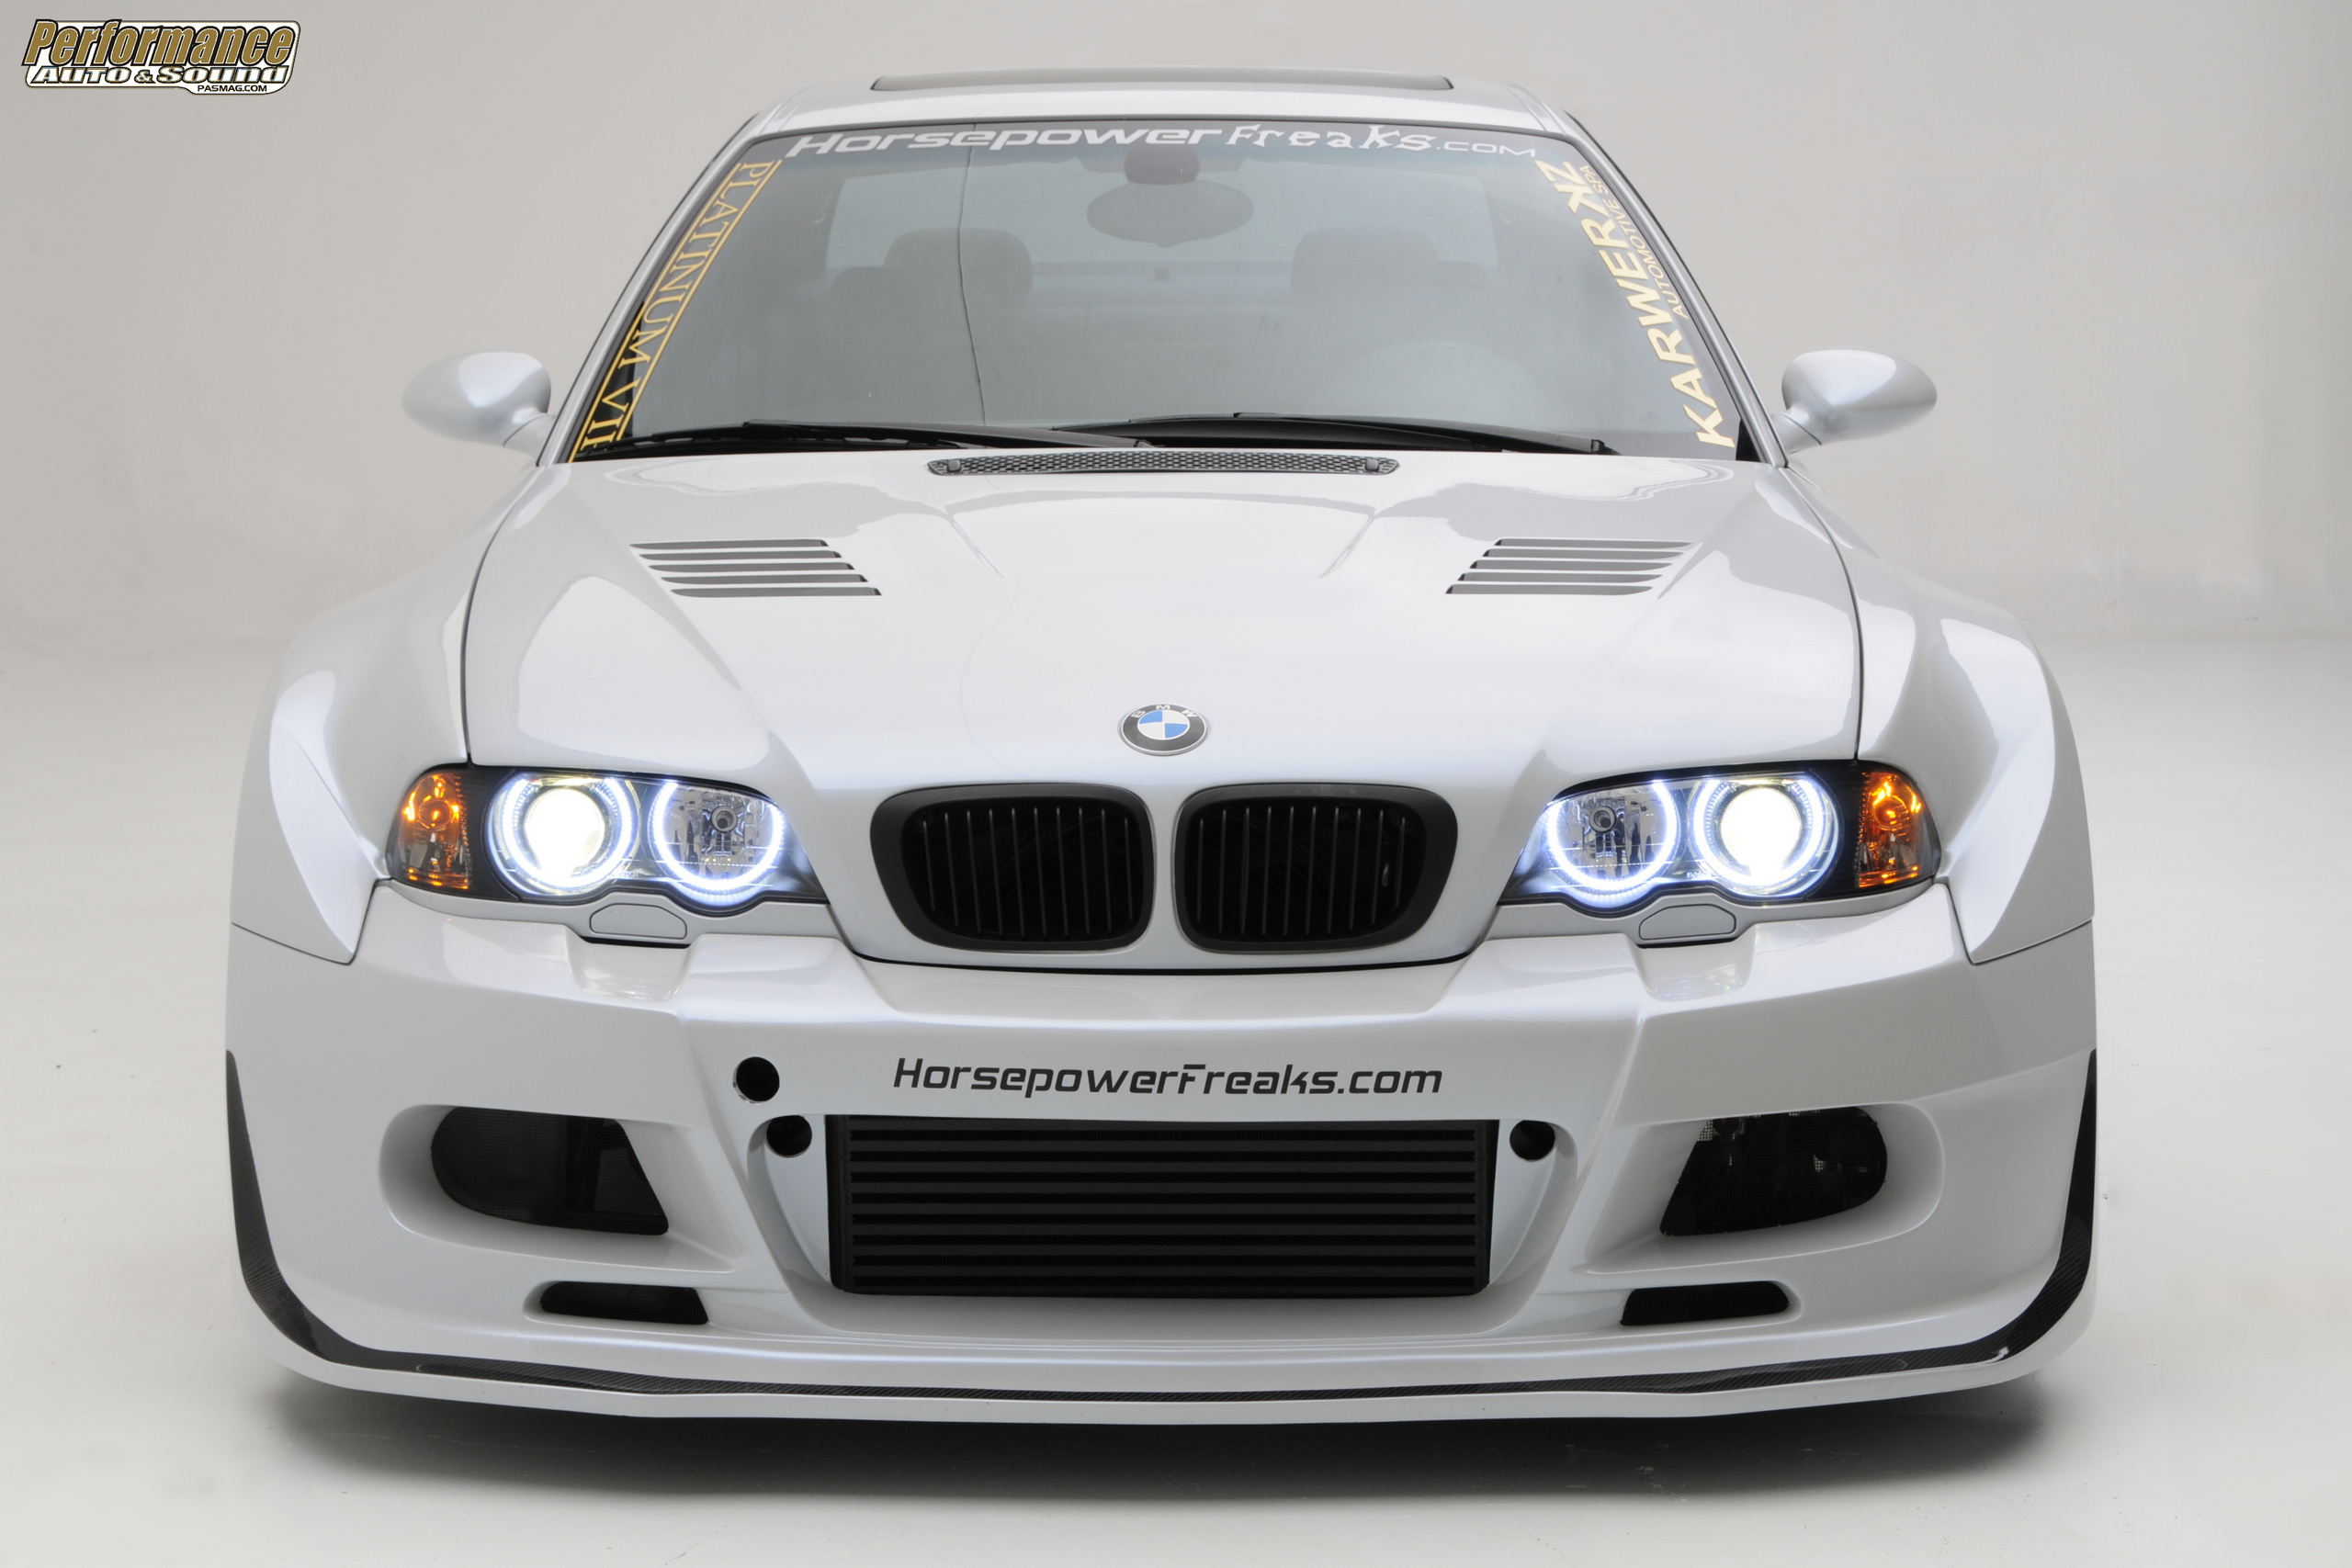 BMW images BMW E46 M3 TURBO BY HPF HD wallpaper and ...